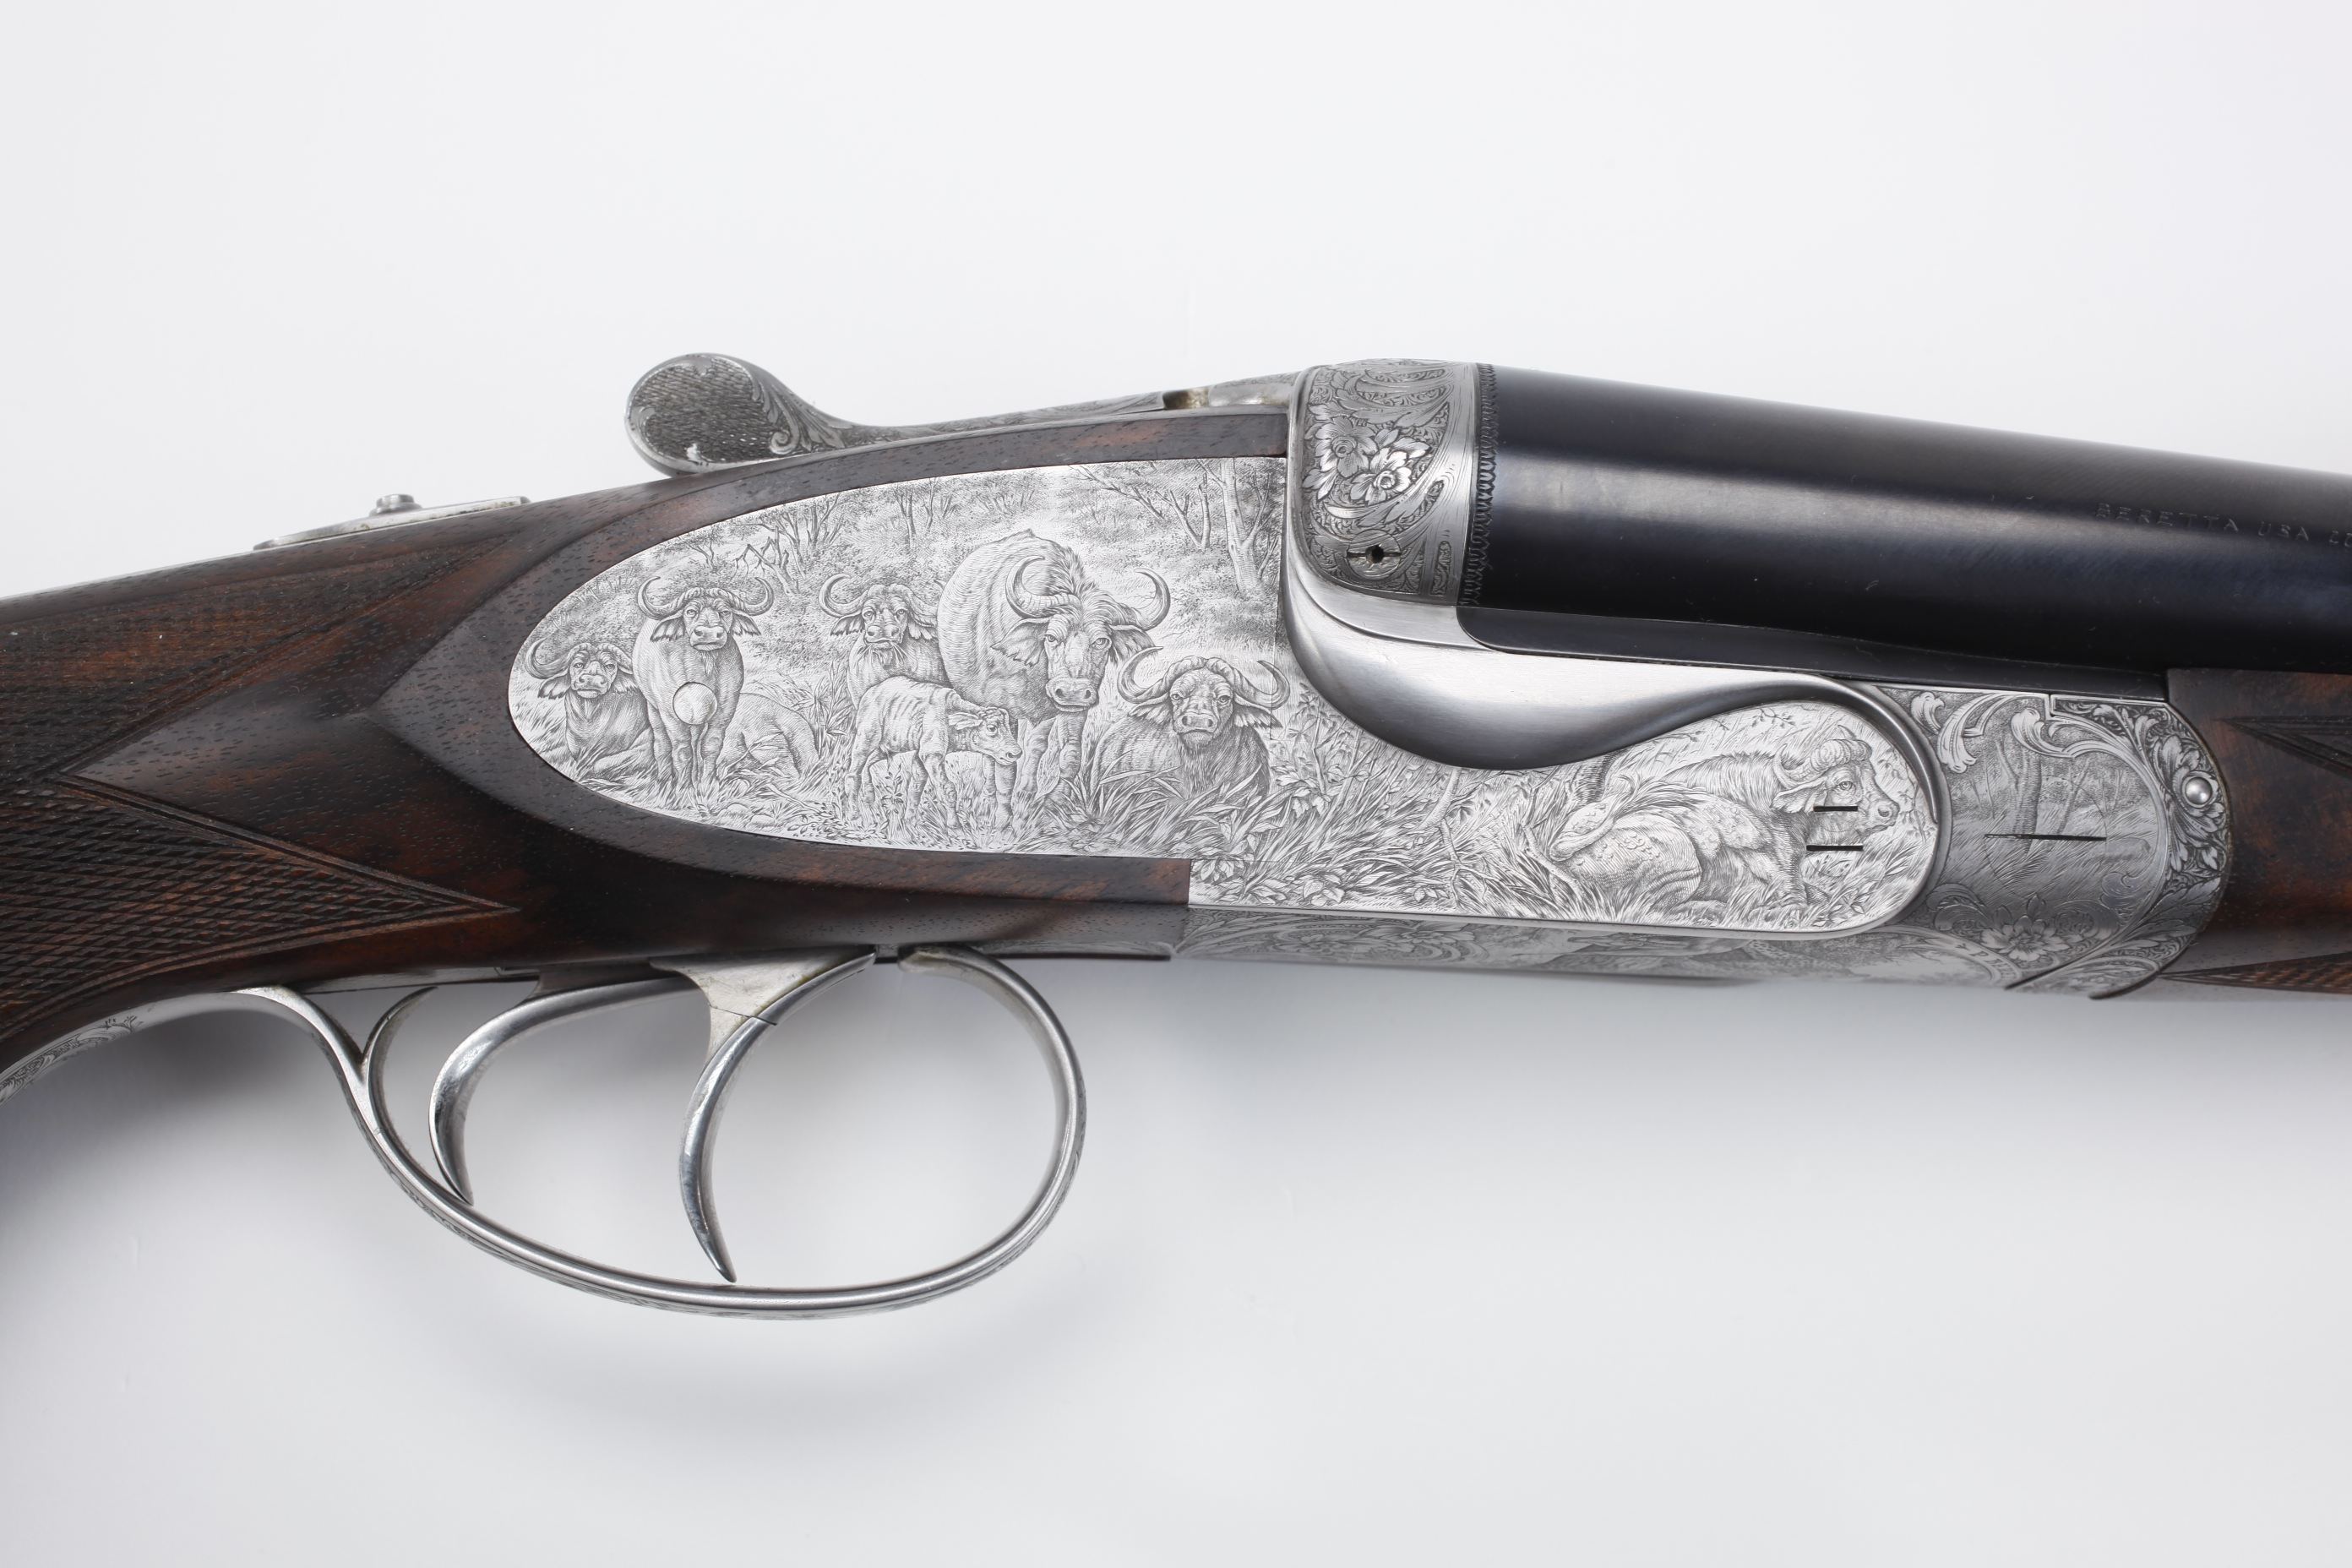 Pietro Beretta (Brescia, Italy) Set of Four Rifles - The Cape Buffalo